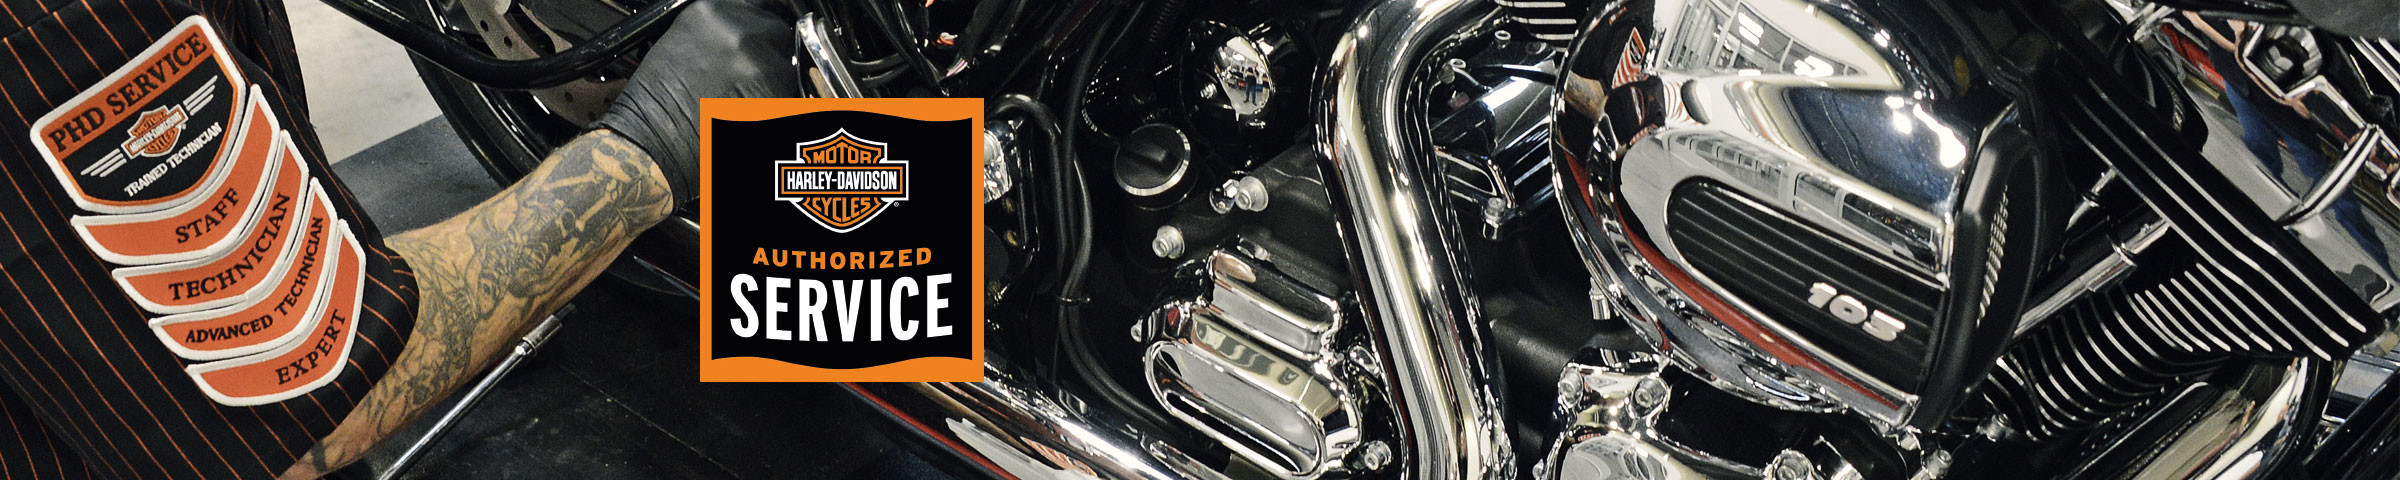 Harley Technician Jobs near Mankato, MN